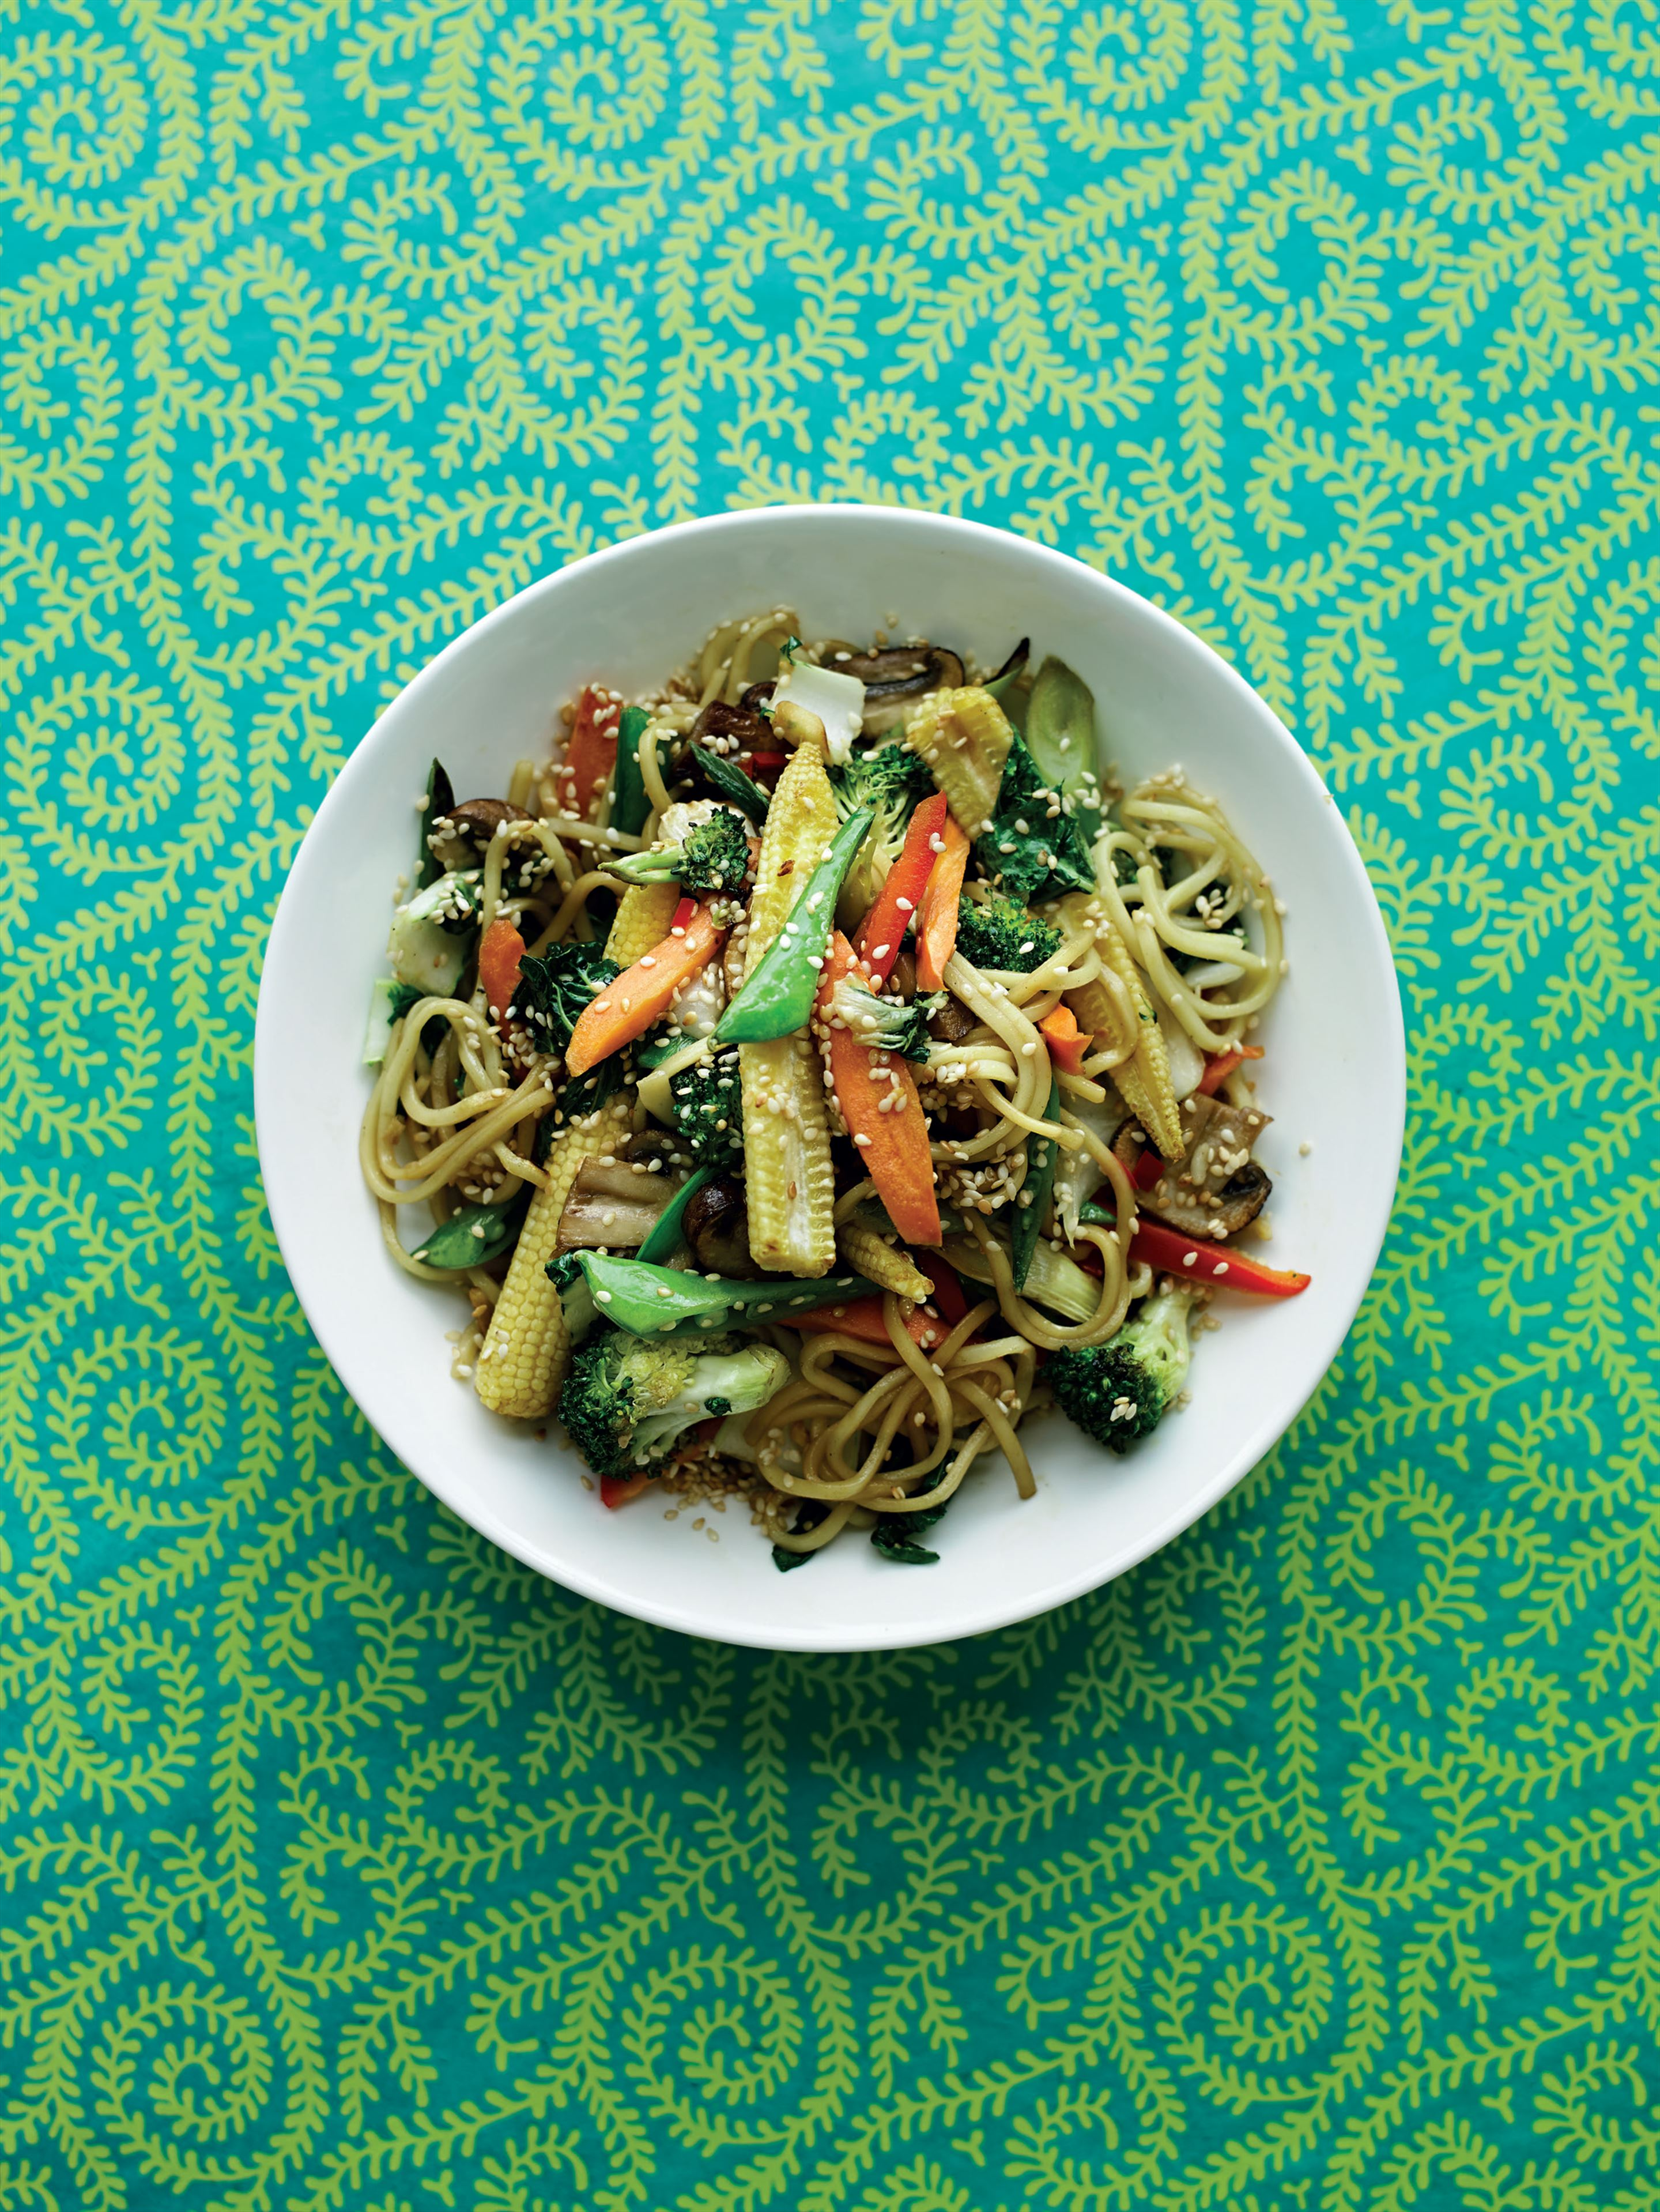 Stir-fried oriental noodles with ginger and sesame